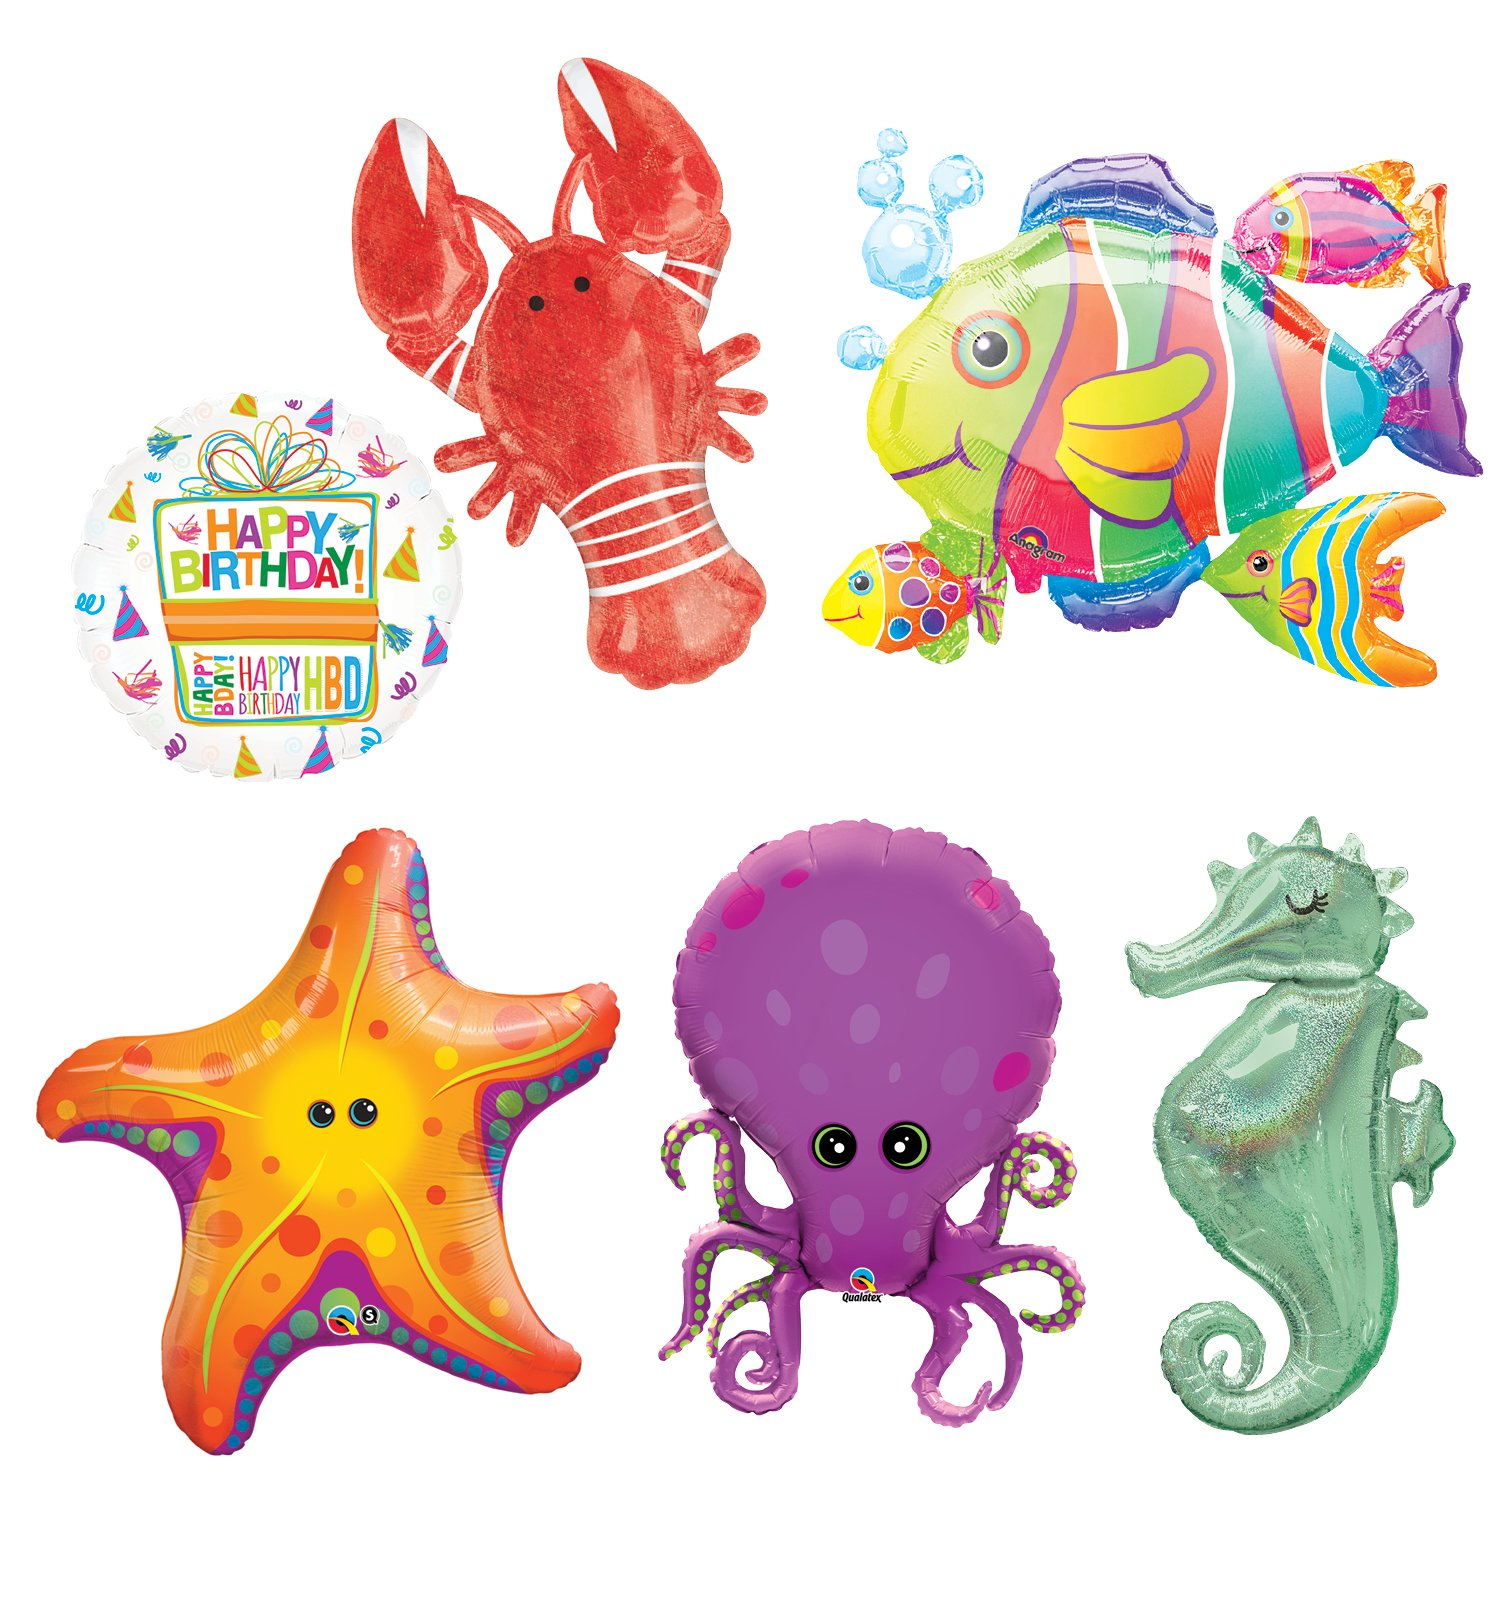 Mayflower Products Under The Sea Animal Party Supplies and Birthday Balloon Bouquet Decorations